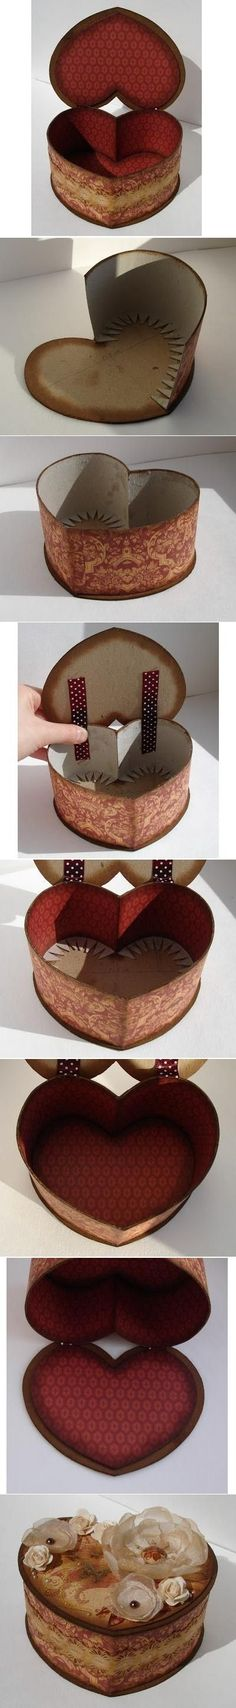 DIY Cardboard Heart Shaped Box DIY Cardboard Heart Shaped Box and Instructions!!! Diy Project :) DIY tutorial !!